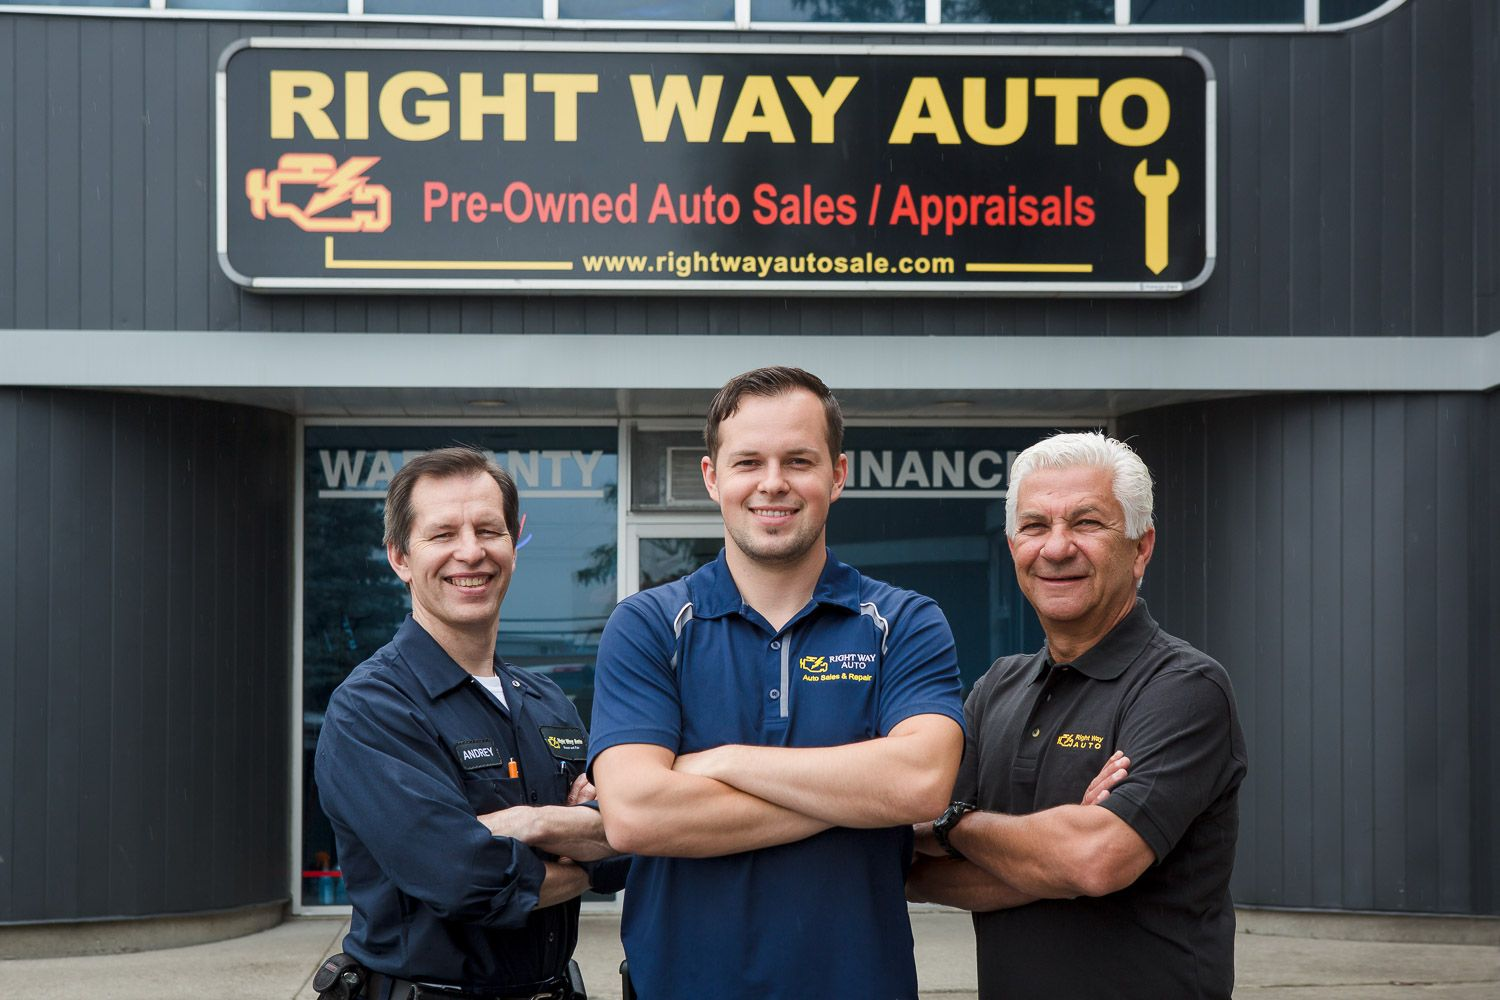 Rightway Auto Sales >> Meet Our Excellent Staff At Right Way Auto Sales To Help You